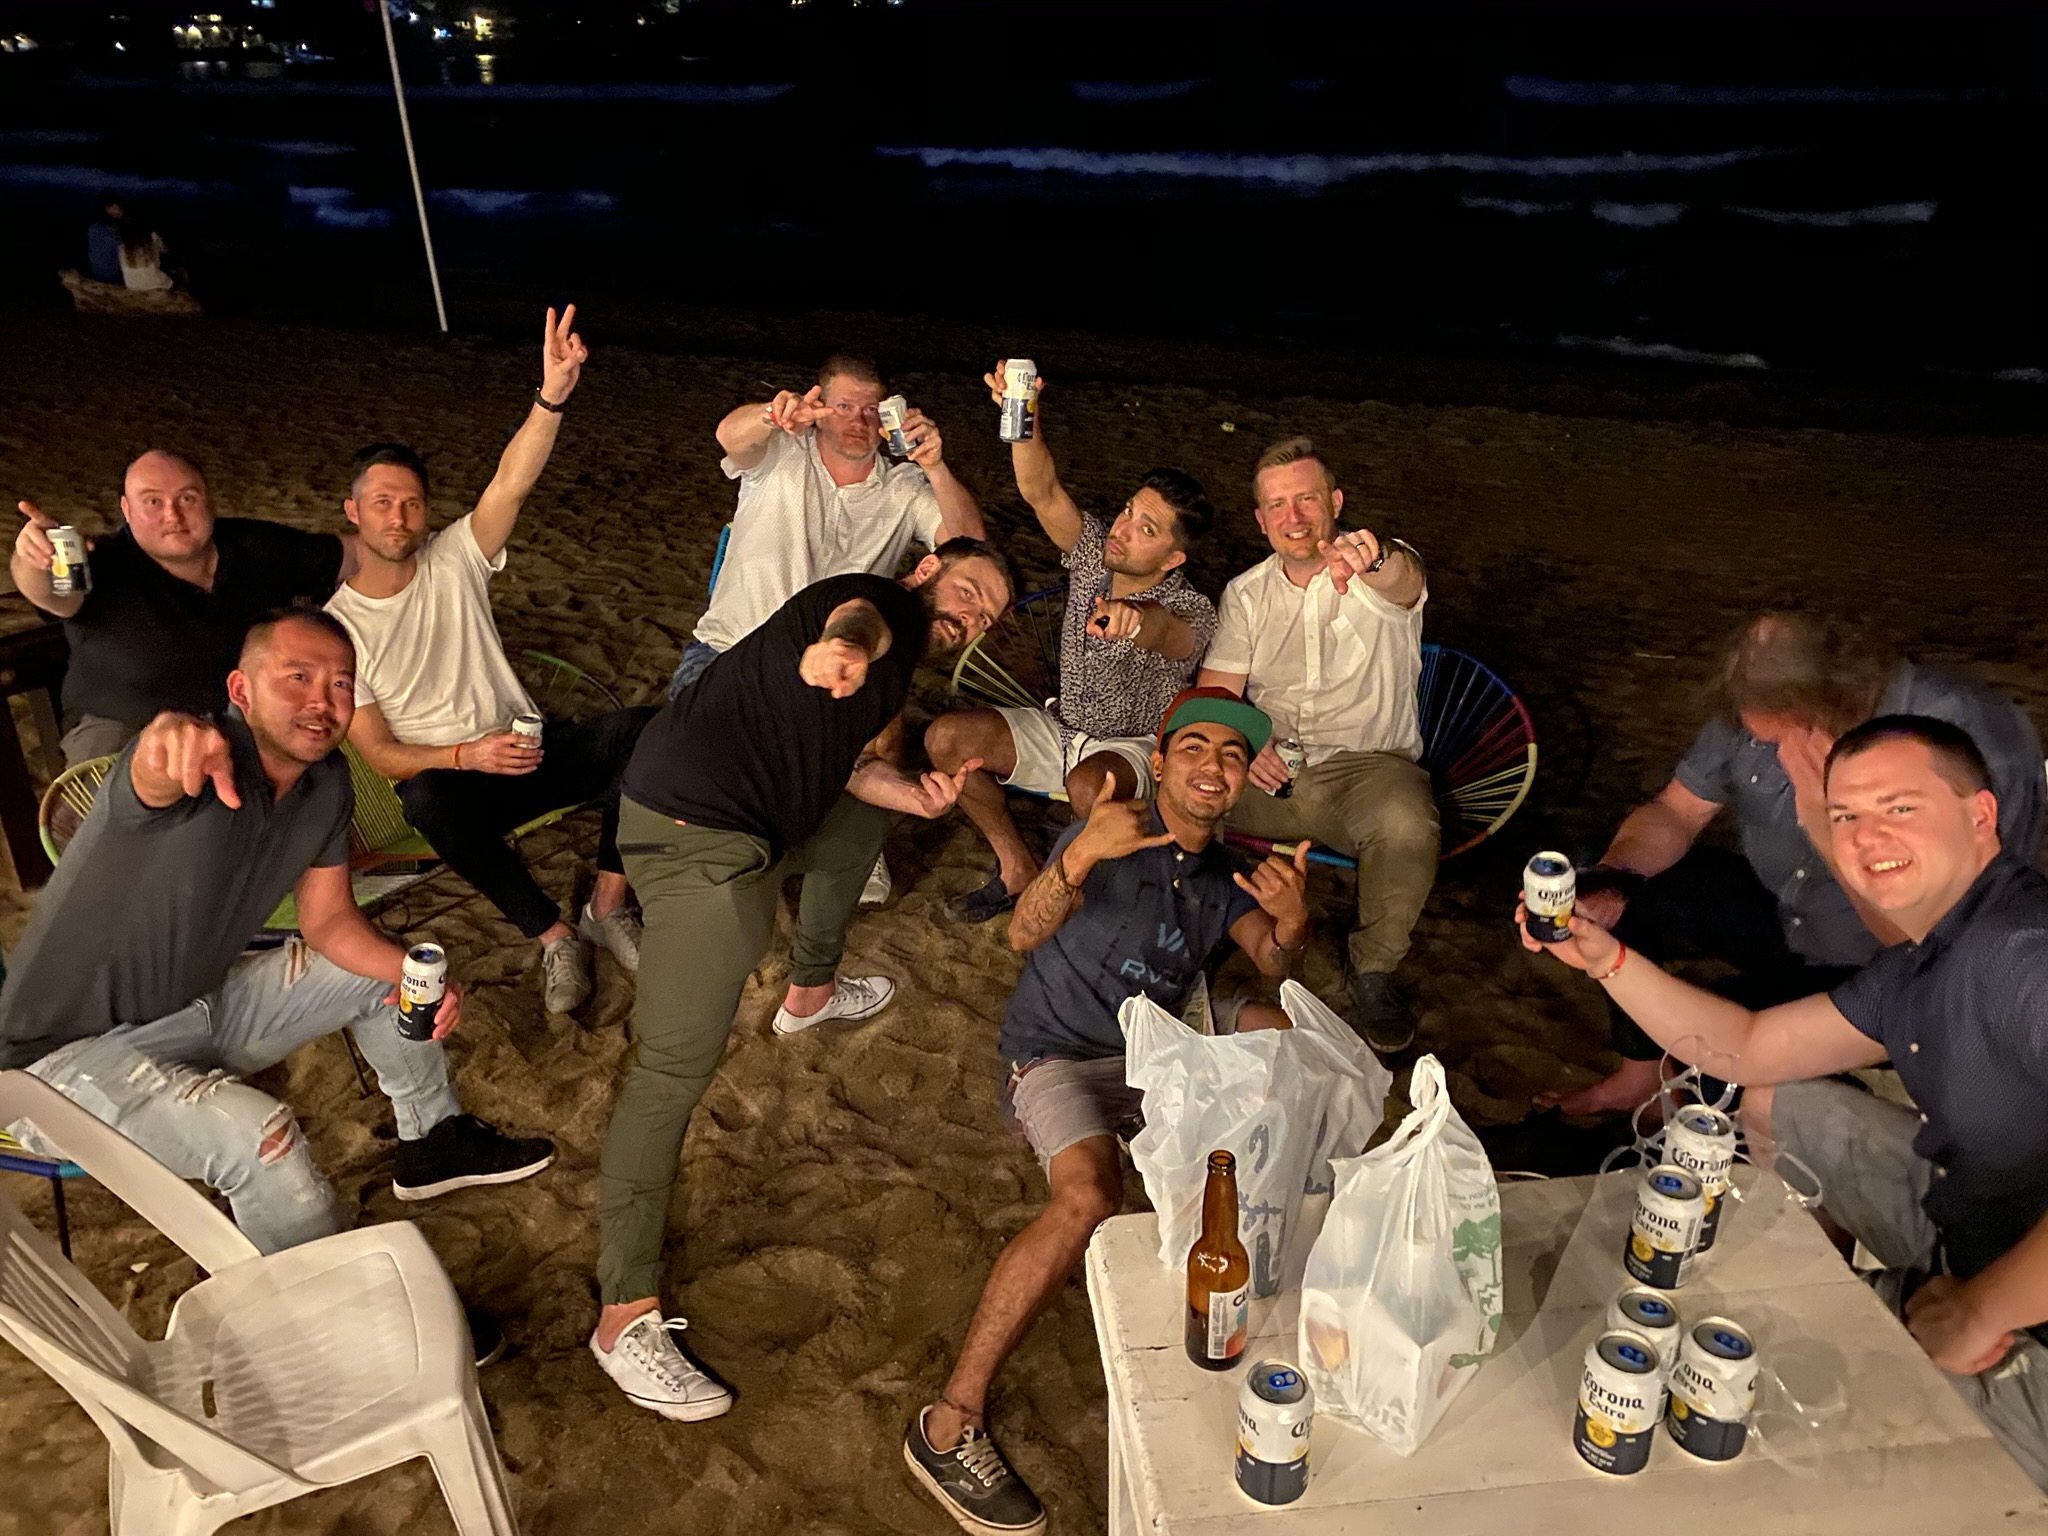 Apex Wireless stagg on the beach having a good time